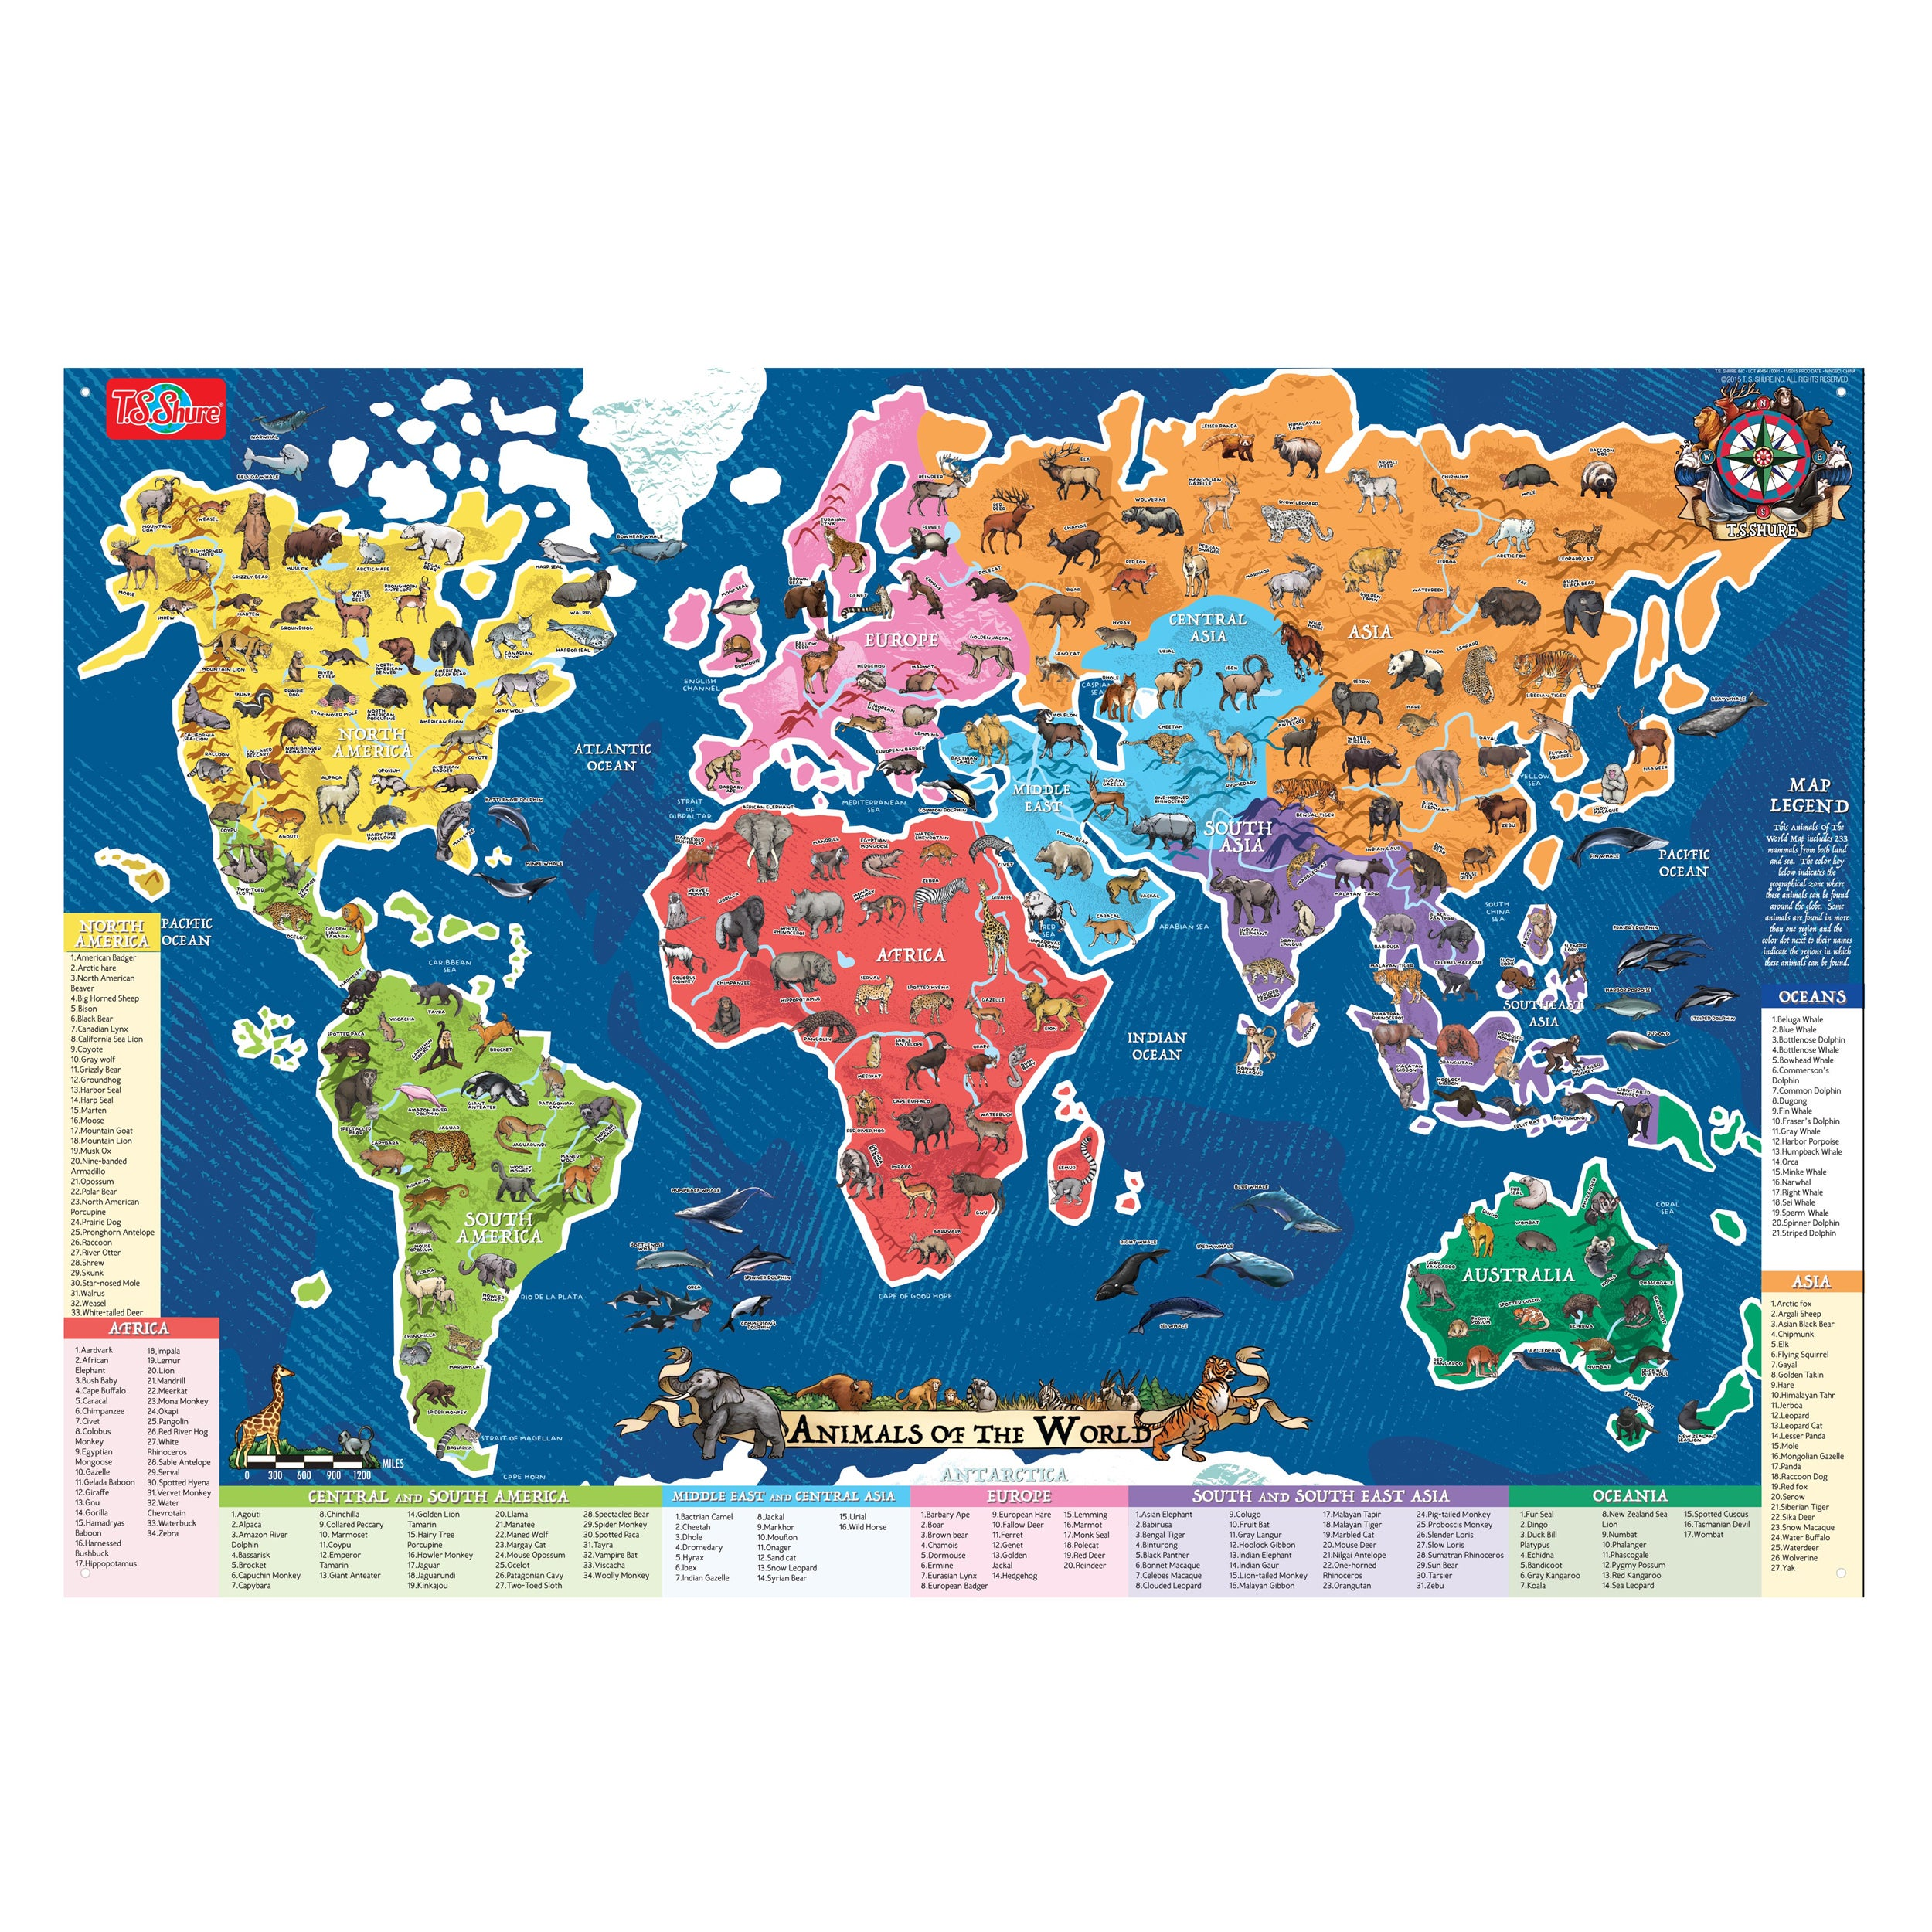 Shop ts shure animals of the world map pictorial poster free shop ts shure animals of the world map pictorial poster free shipping on orders over 45 overstock 12837491 gumiabroncs Choice Image